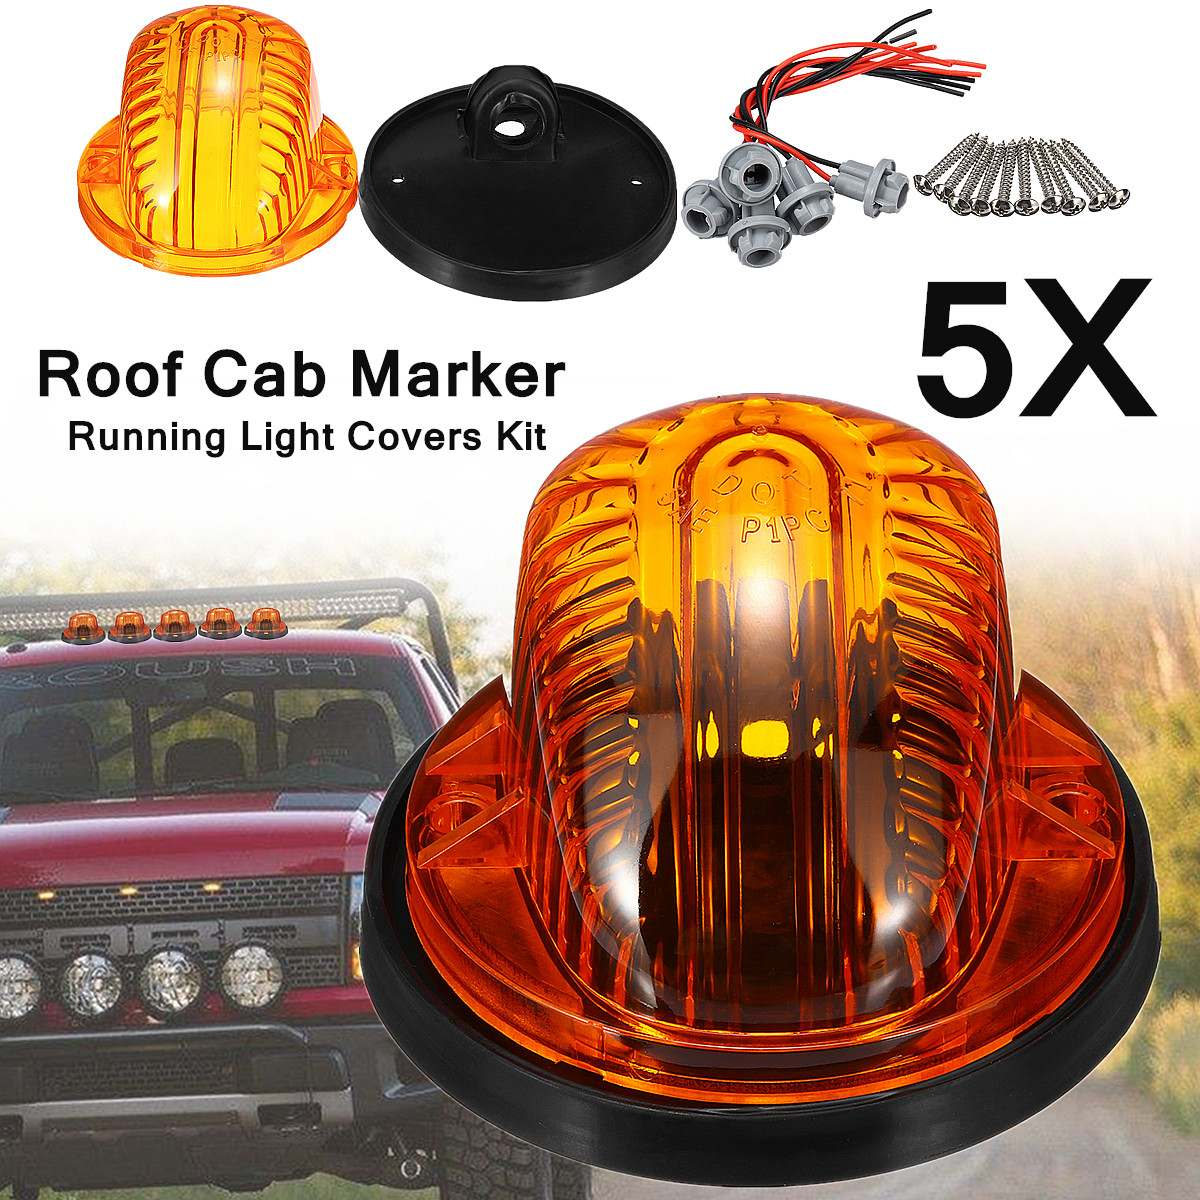 5PCS Smoke Roof Cab Marker Running Light Covers Kit For SUV Fordd-Pickup Trucks ABS Direct replacement 93x58mm with Soft Pads